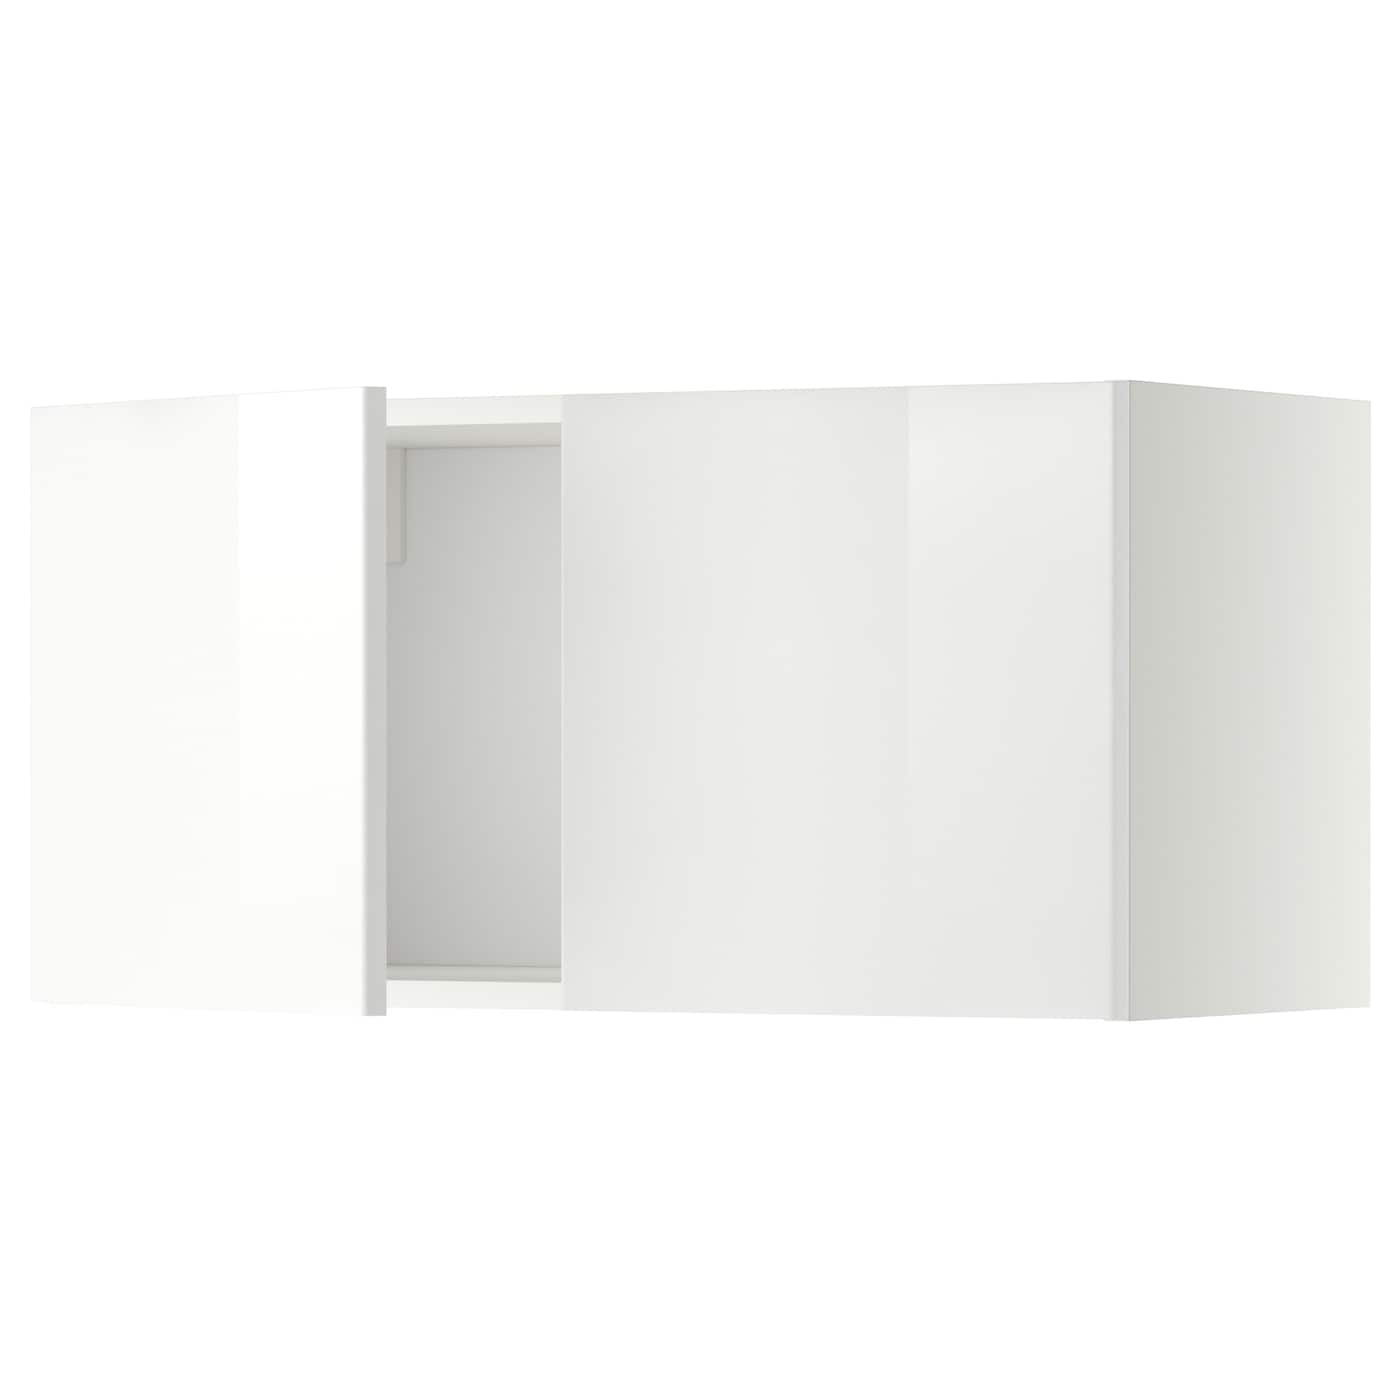 IKEA METOD Wall Cabinet With 2 Doors Sturdy Frame Construction 18 Mm  #6E6E5D 2000 2000 Parquet In Sala Da Pranzo